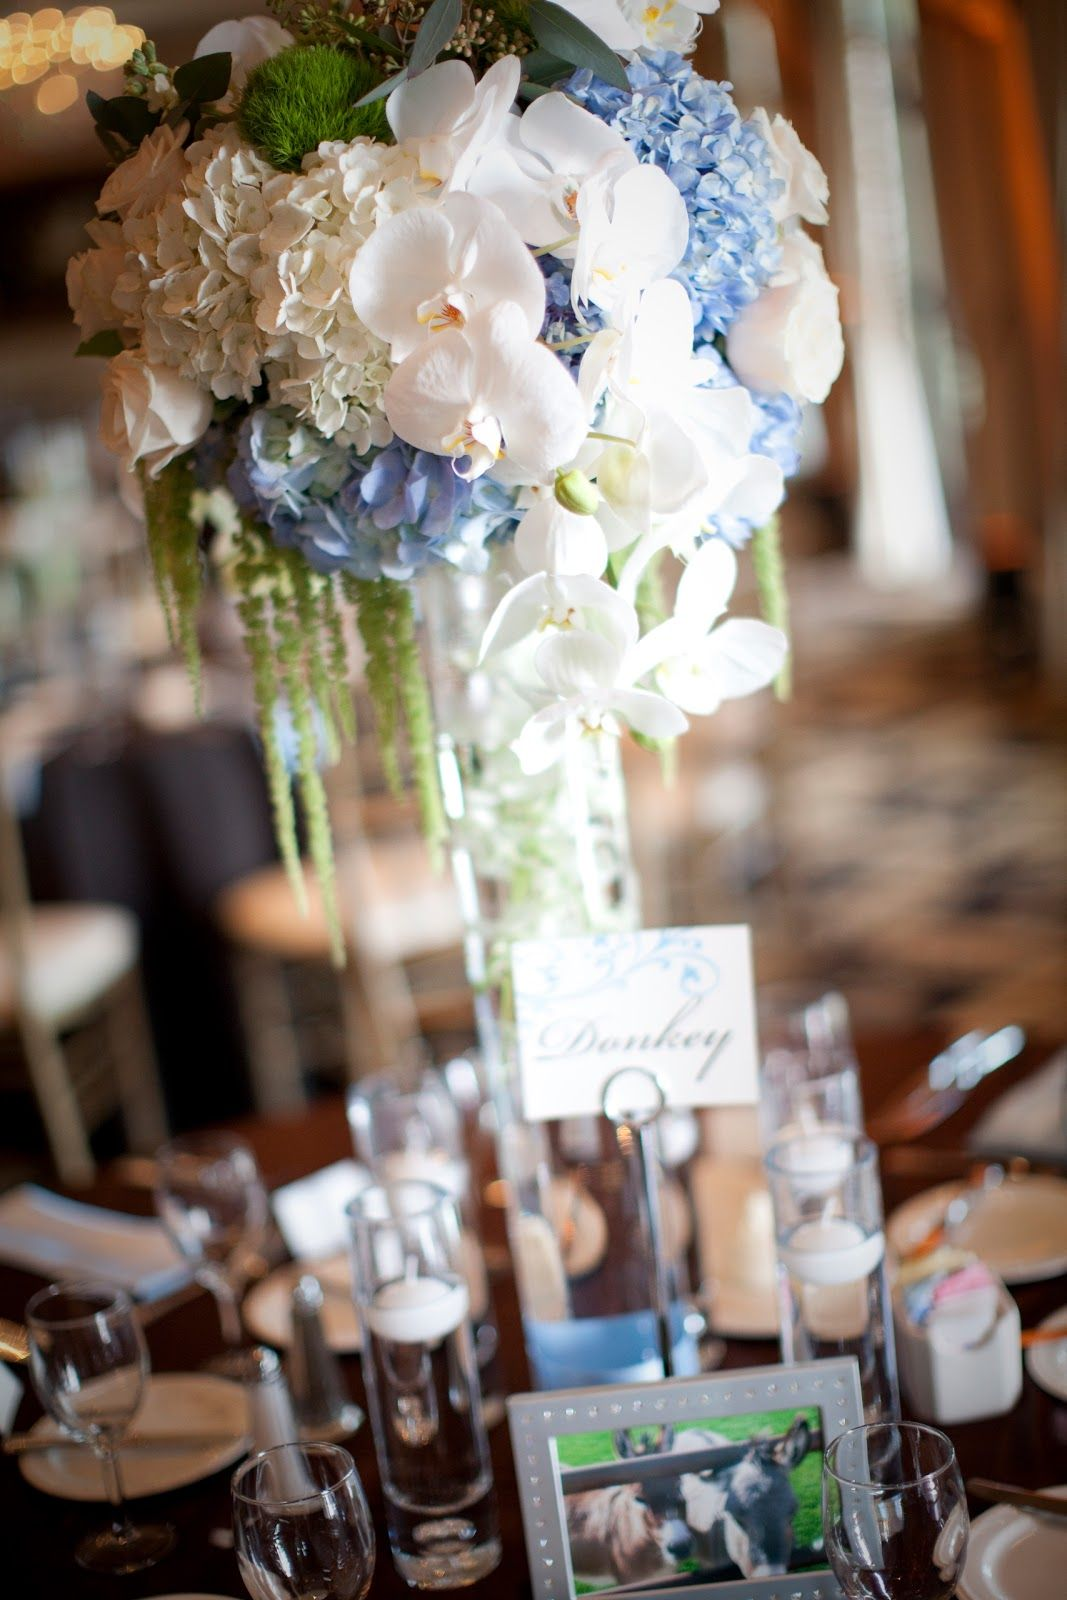 Blue wedding decor ideas  SWOONING OVER THESE FABULOUS WEDDING FLOWER IDEAS FROM HEAVENLY